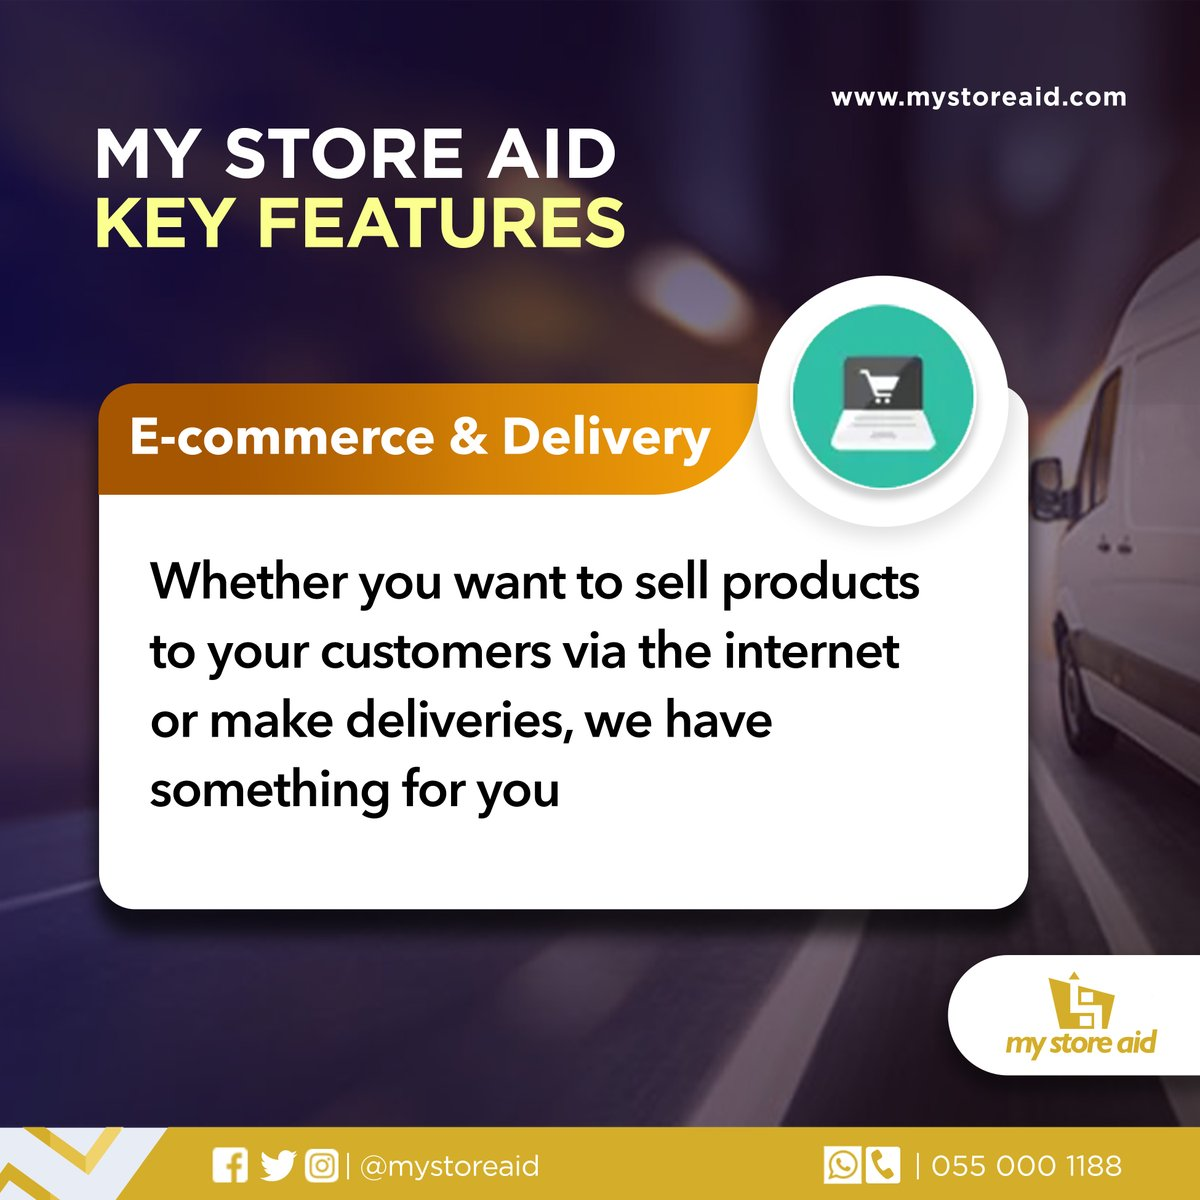 Whether to sell or make delivery...Get My Store Aid App Now.  Contact us for more information +233 055 000 1188  Visit: https://t.co/qaWxIAj5mg  #MyStoreAid #ManageYourStore #YourAppIsHere #Growth #Prosperity #DrinkStore #Store #Drinks #Election2020 #Ghana4Peace https://t.co/qG4A9RlLAV